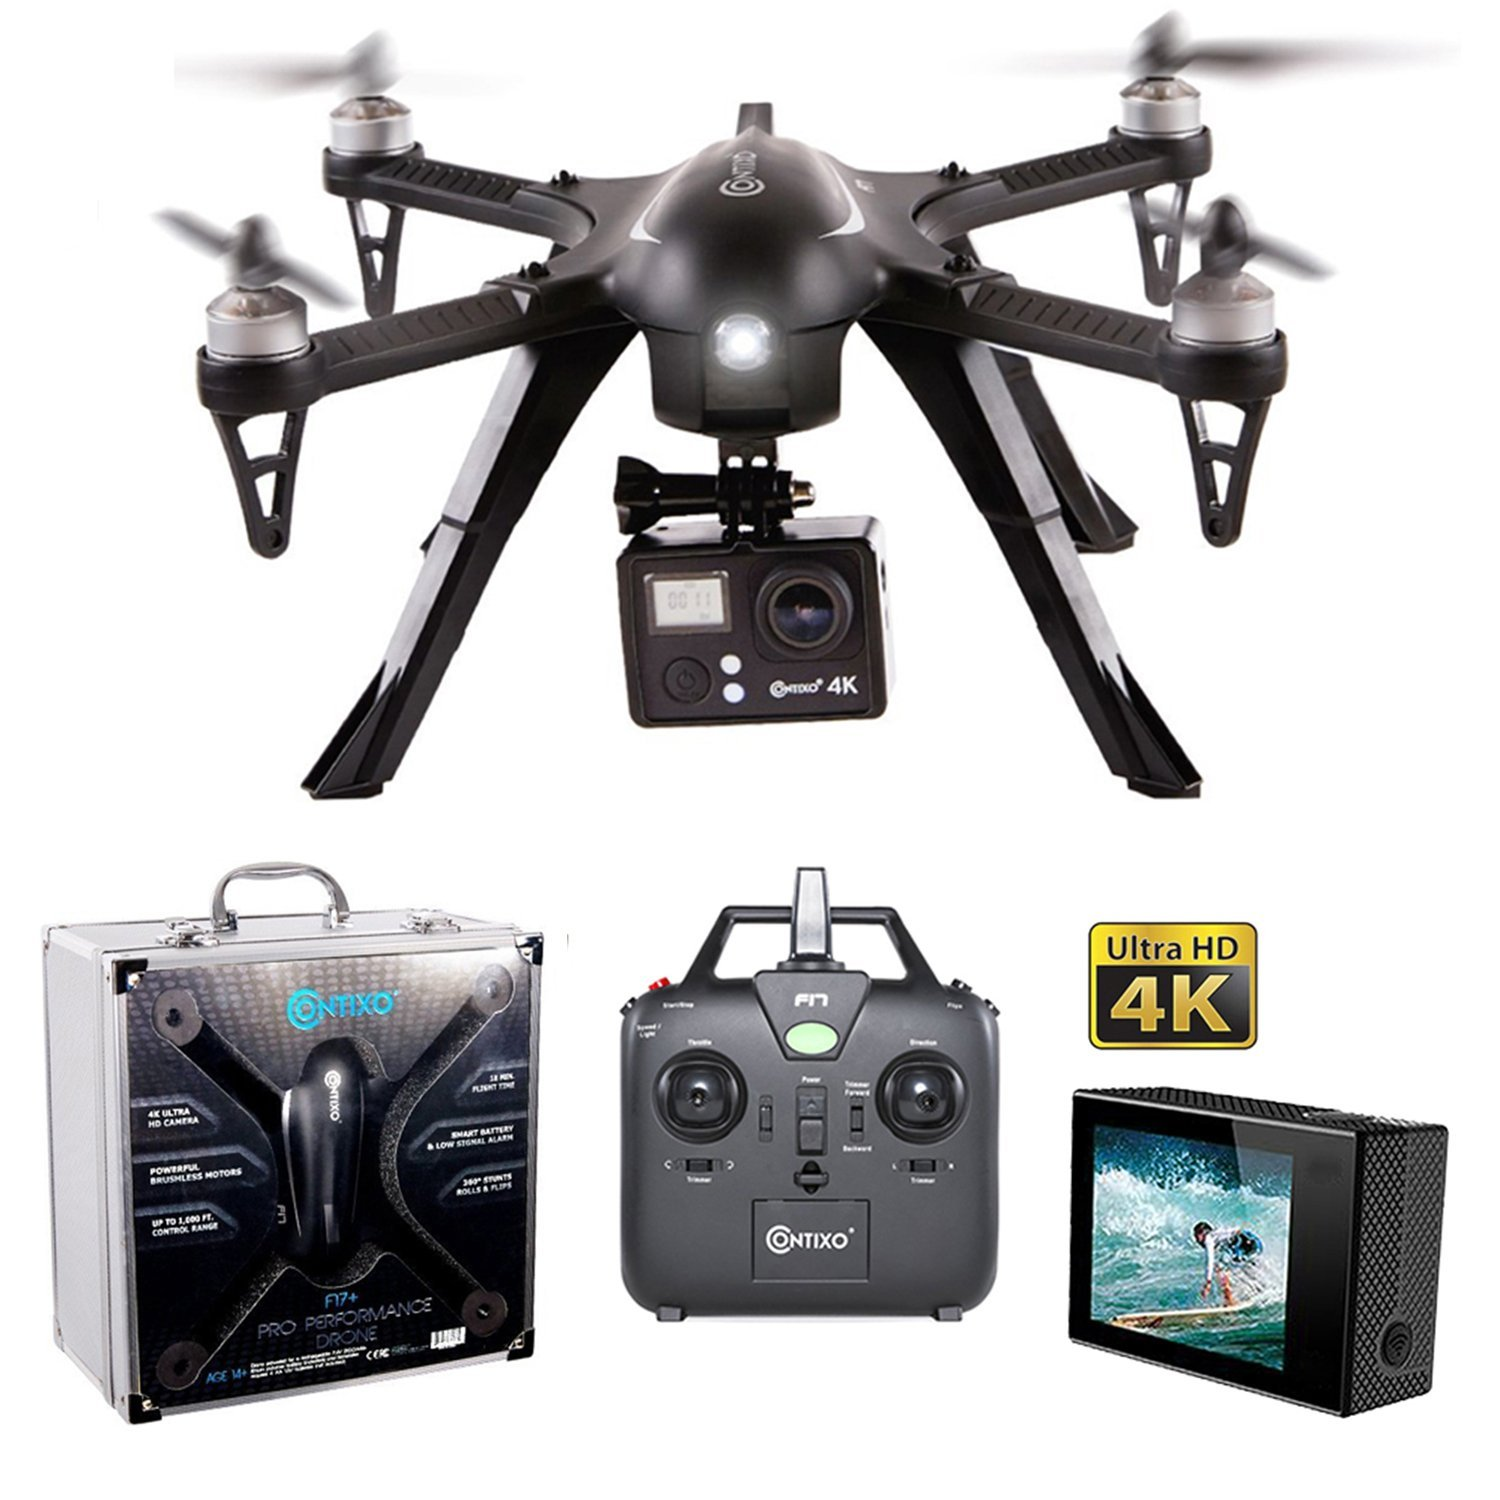 6. Contixo F17+ RC Quadcopter